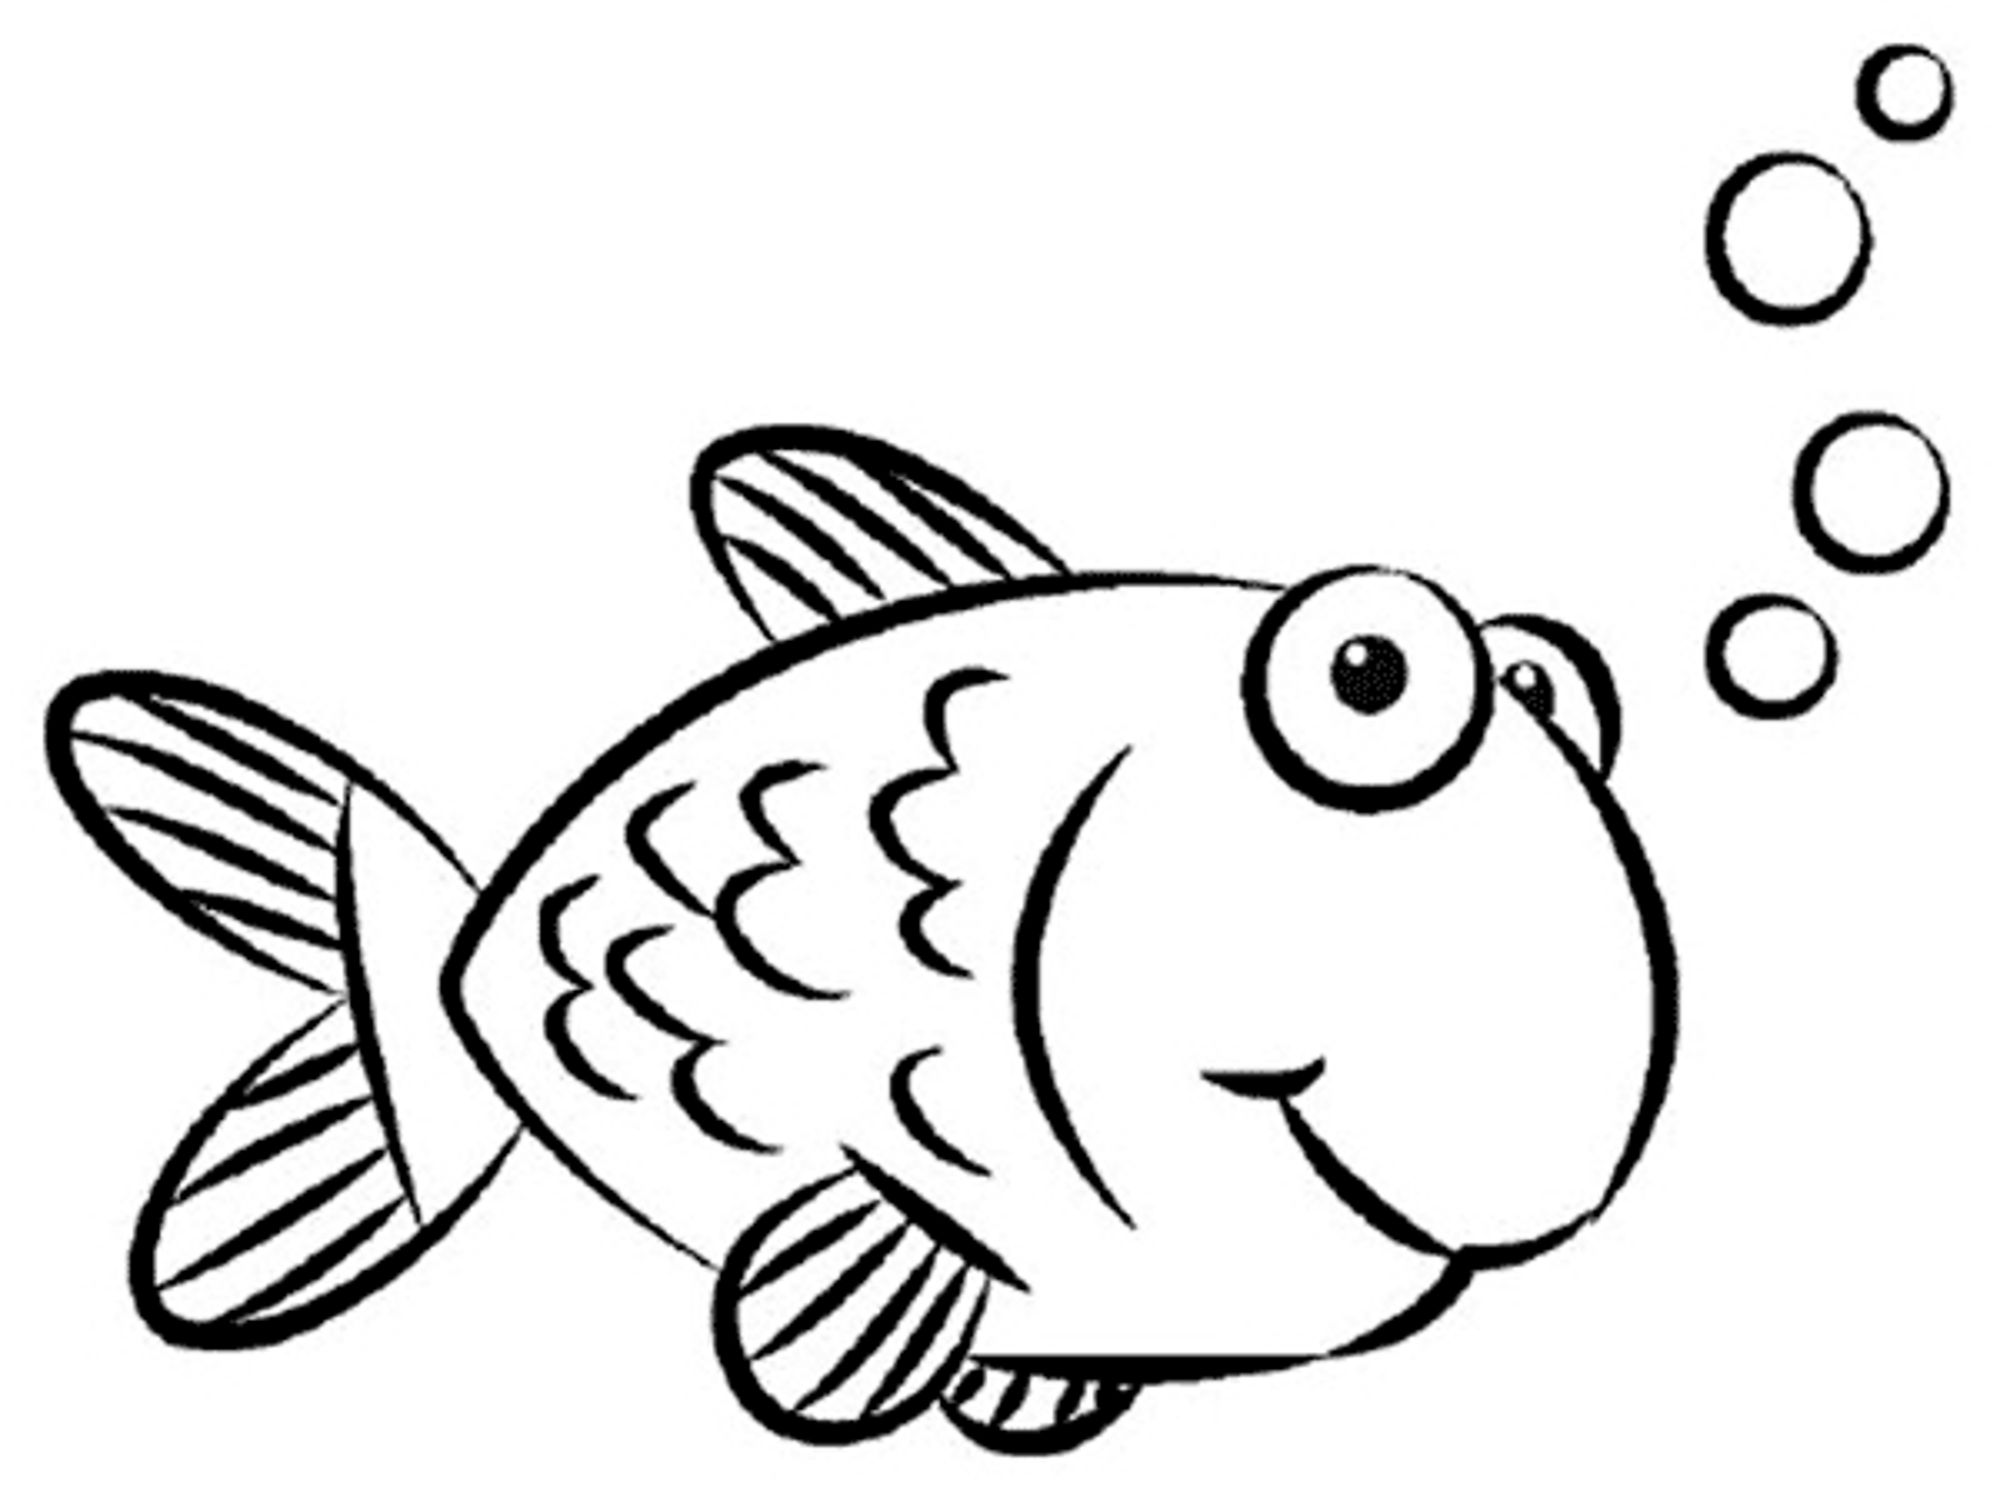 fish coloring pages for kids printable - Coloring Page Of Fish